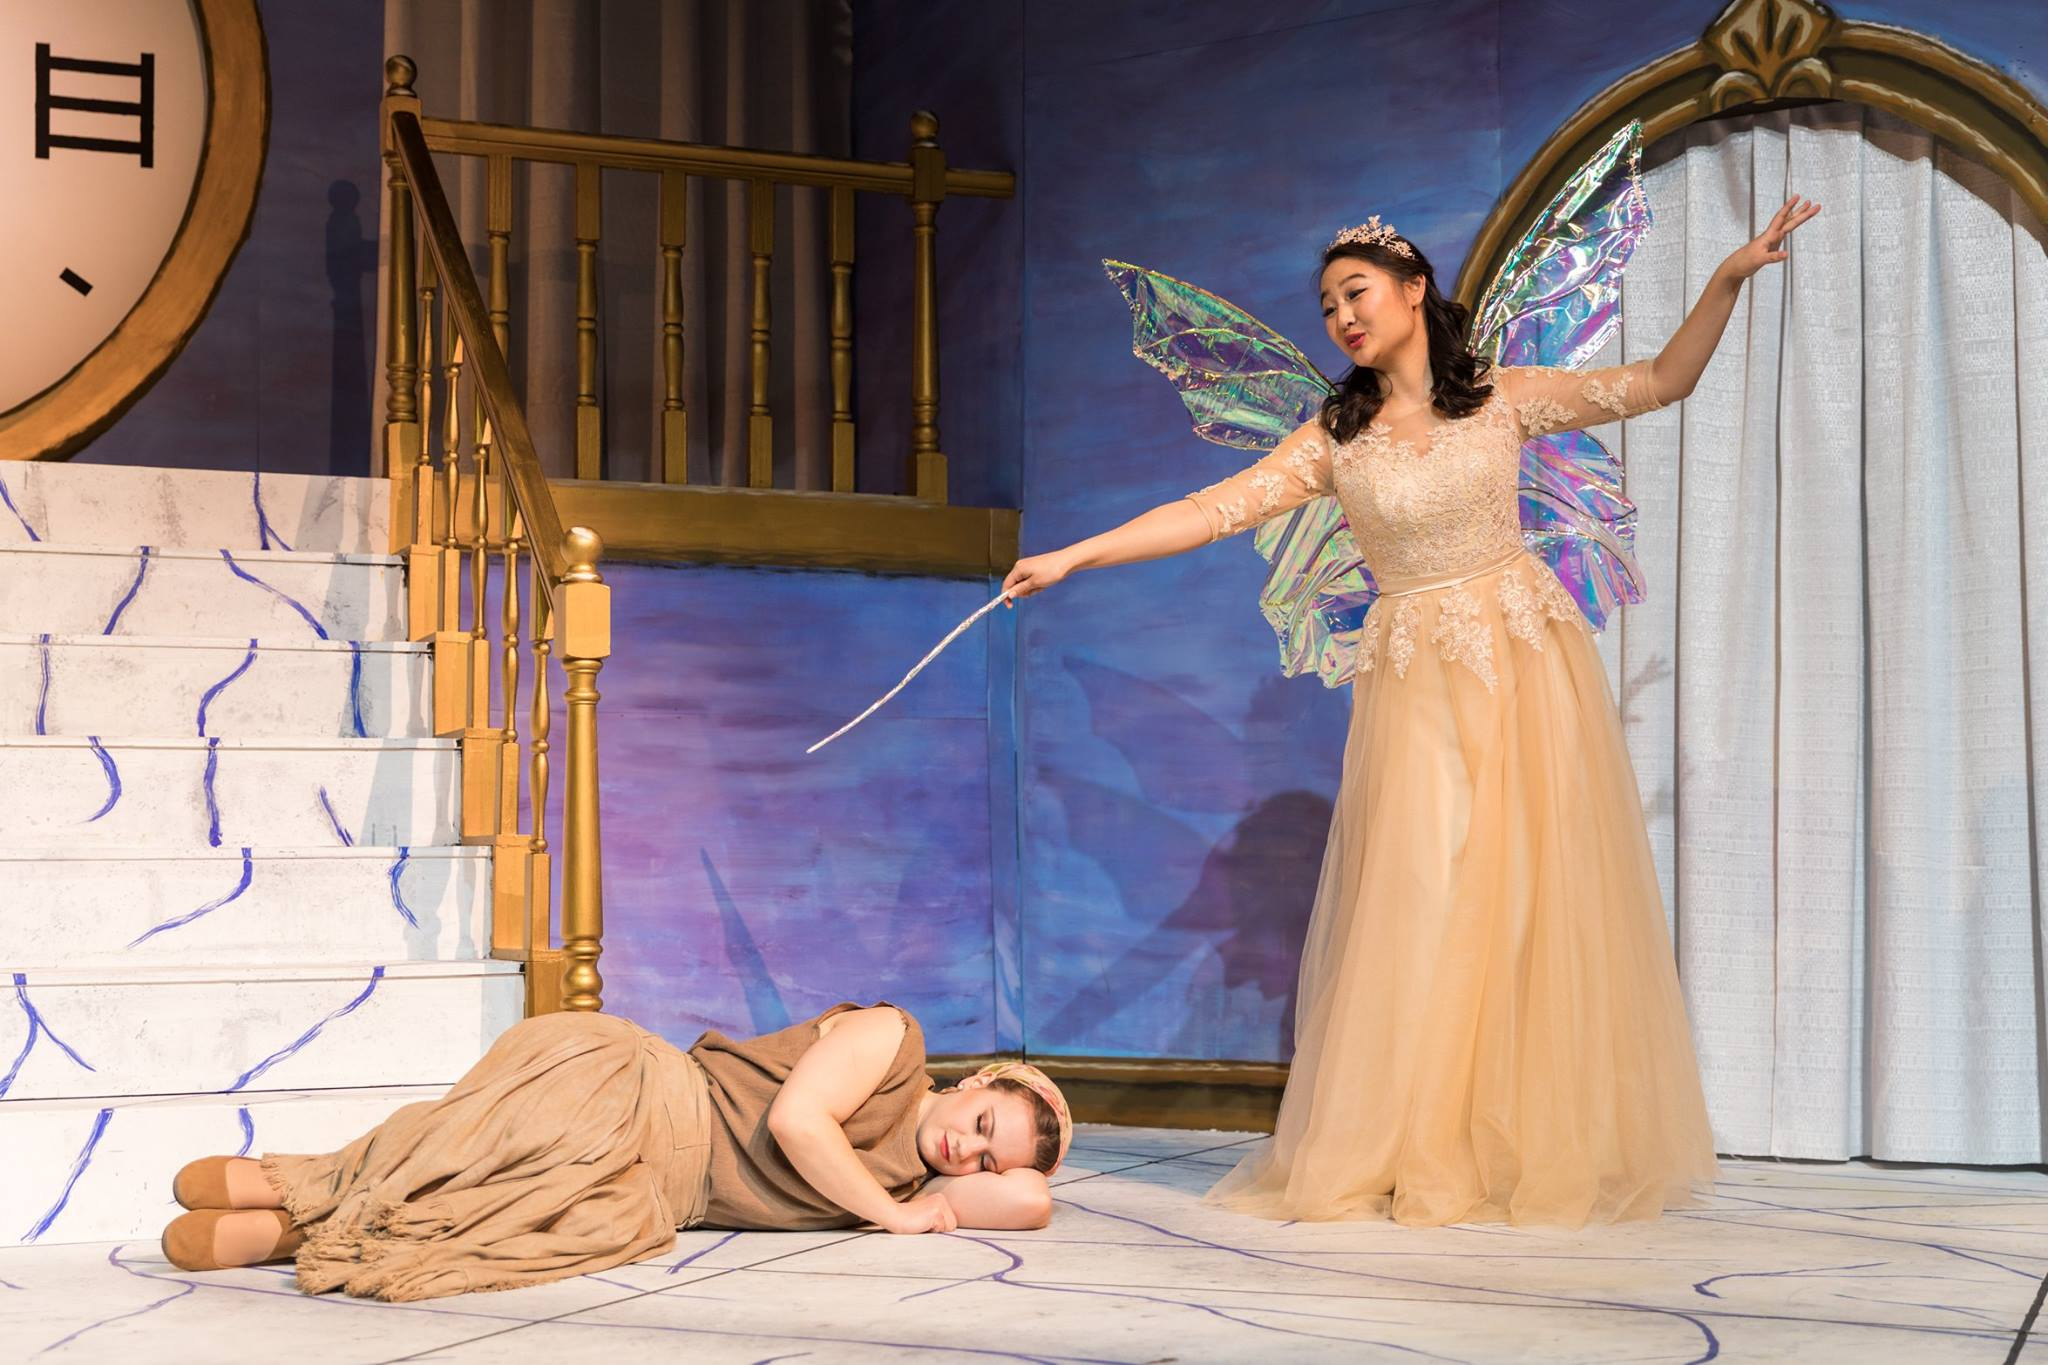 Act I: La Fée, or the Fairy Godmother (Natalie Choo '22), casts a spell on Cendrillon, or Cinderella (Arianna Paz '19). Photo: Joshua Chiang